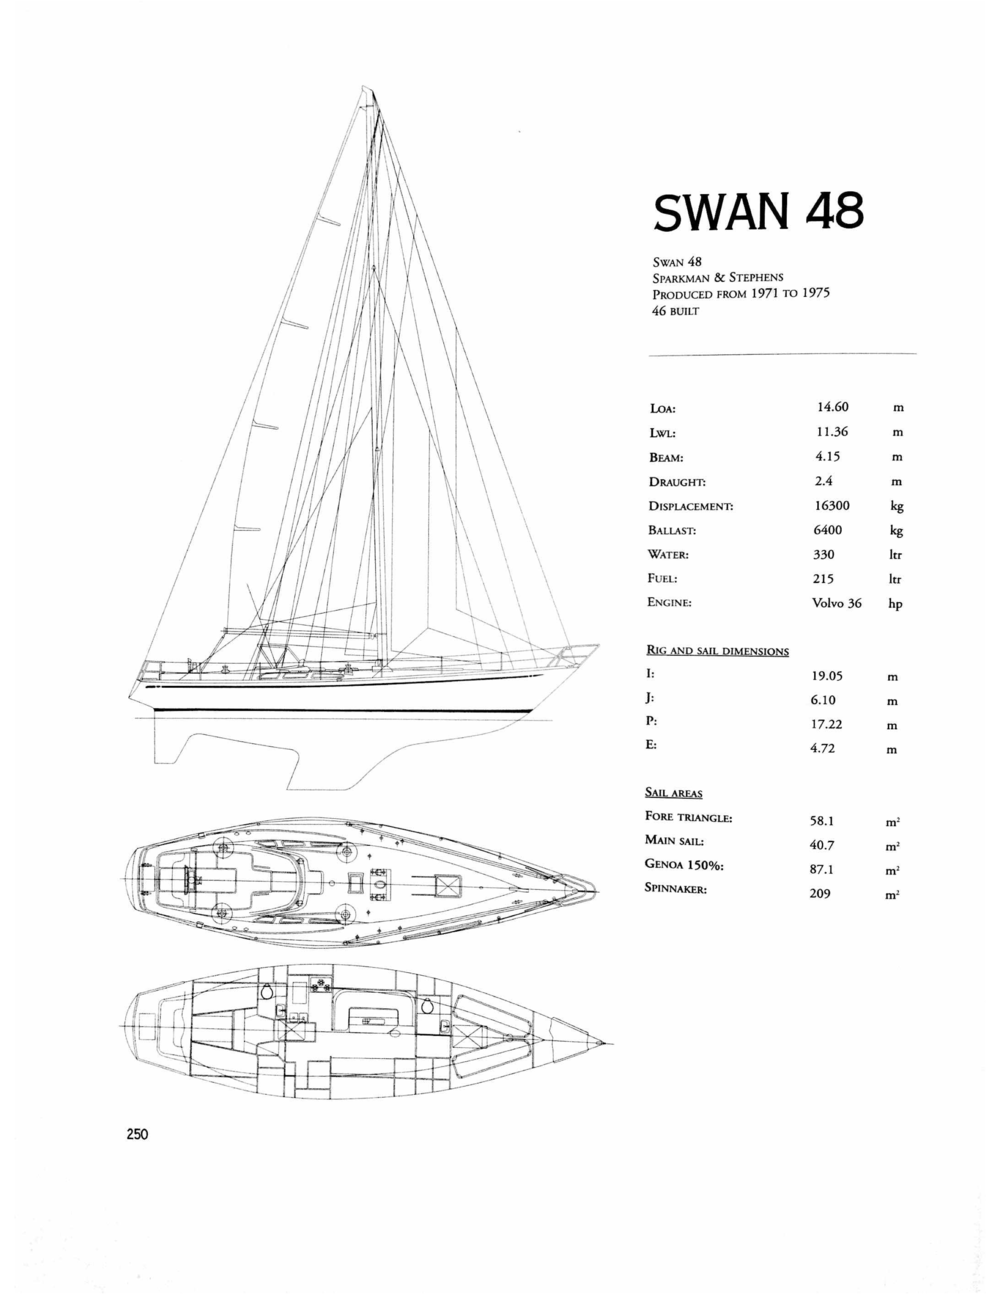 59 North Sailing Swan 48 Isbjorn 1972 Ss 2004 Polar Boat Wiring Diagram On Deck